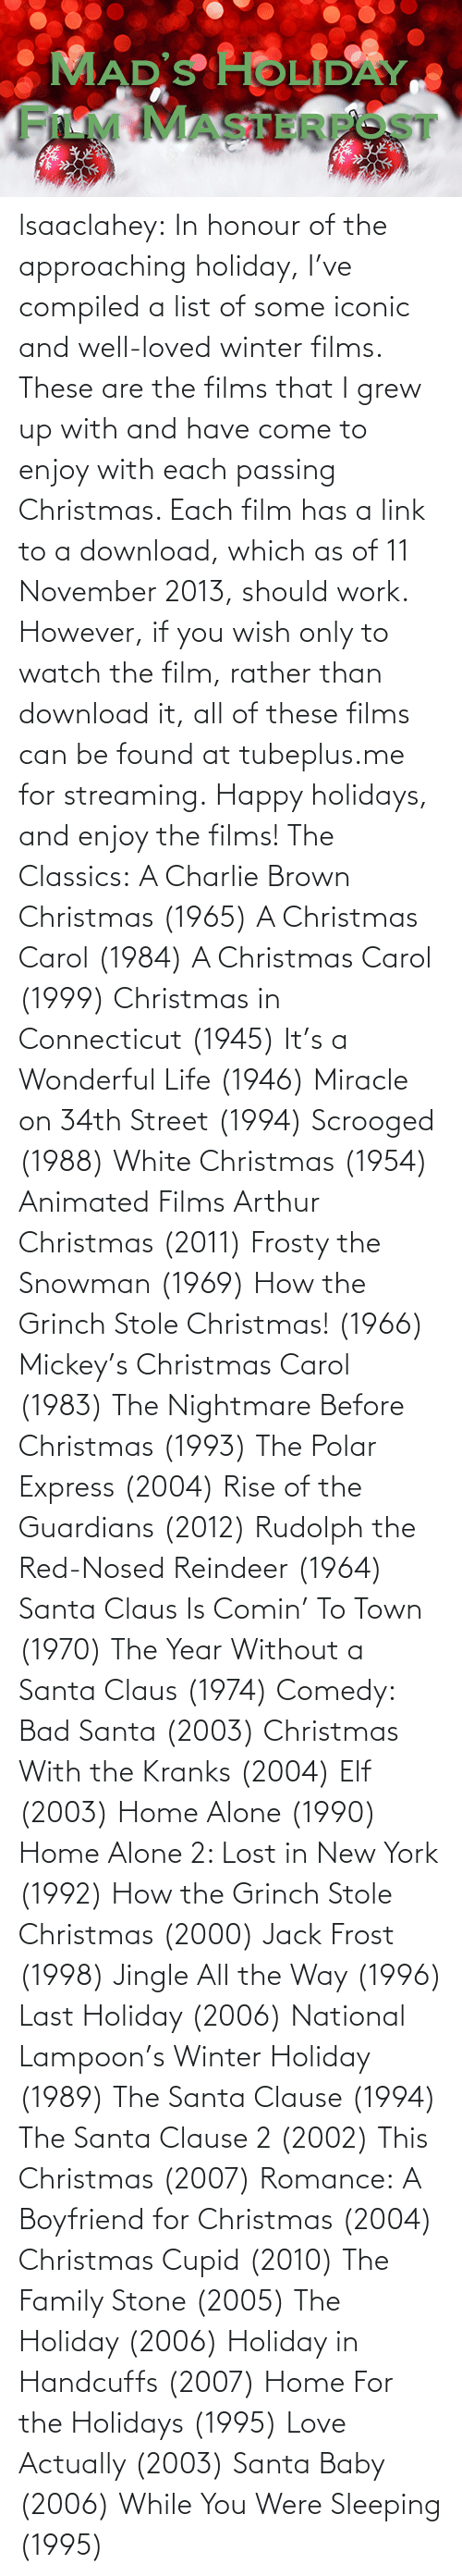 Compiled: MAD'S HOLIDAY  FILM MASTERFOST lsaaclahey:  In honour of the approaching holiday, I've compiled a list of some iconic and well-loved winter films. These are the films that I grew up with and have come to enjoy with each passing Christmas. Each film has a link to a download, which as of 11 November 2013, should work. However, if you wish only to watch the film, rather than download it, all of these films can be found at tubeplus.me for streaming. Happy holidays, and enjoy the films! The Classics: A Charlie Brown Christmas (1965) A Christmas Carol (1984) A Christmas Carol (1999) Christmas in Connecticut (1945) It's a Wonderful Life (1946) Miracle on 34th Street (1994) Scrooged (1988) White Christmas (1954) Animated Films Arthur Christmas (2011) Frosty the Snowman (1969) How the Grinch Stole Christmas! (1966) Mickey's Christmas Carol (1983) The Nightmare Before Christmas (1993) The Polar Express (2004) Rise of the Guardians (2012) Rudolph the Red-Nosed Reindeer (1964) Santa Claus Is Comin' To Town (1970) The Year Without a Santa Claus (1974) Comedy: Bad Santa (2003) Christmas With the Kranks (2004) Elf (2003) Home Alone (1990) Home Alone 2: Lost in New York (1992) How the Grinch Stole Christmas (2000) Jack Frost (1998) Jingle All the Way (1996) Last Holiday (2006) National Lampoon's Winter Holiday (1989) The Santa Clause (1994) The Santa Clause 2 (2002) This Christmas (2007) Romance: A Boyfriend for Christmas (2004) Christmas Cupid (2010) The Family Stone (2005) The Holiday (2006) Holiday in Handcuffs (2007) Home For the Holidays (1995) Love Actually (2003) Santa Baby (2006) While You Were Sleeping (1995)